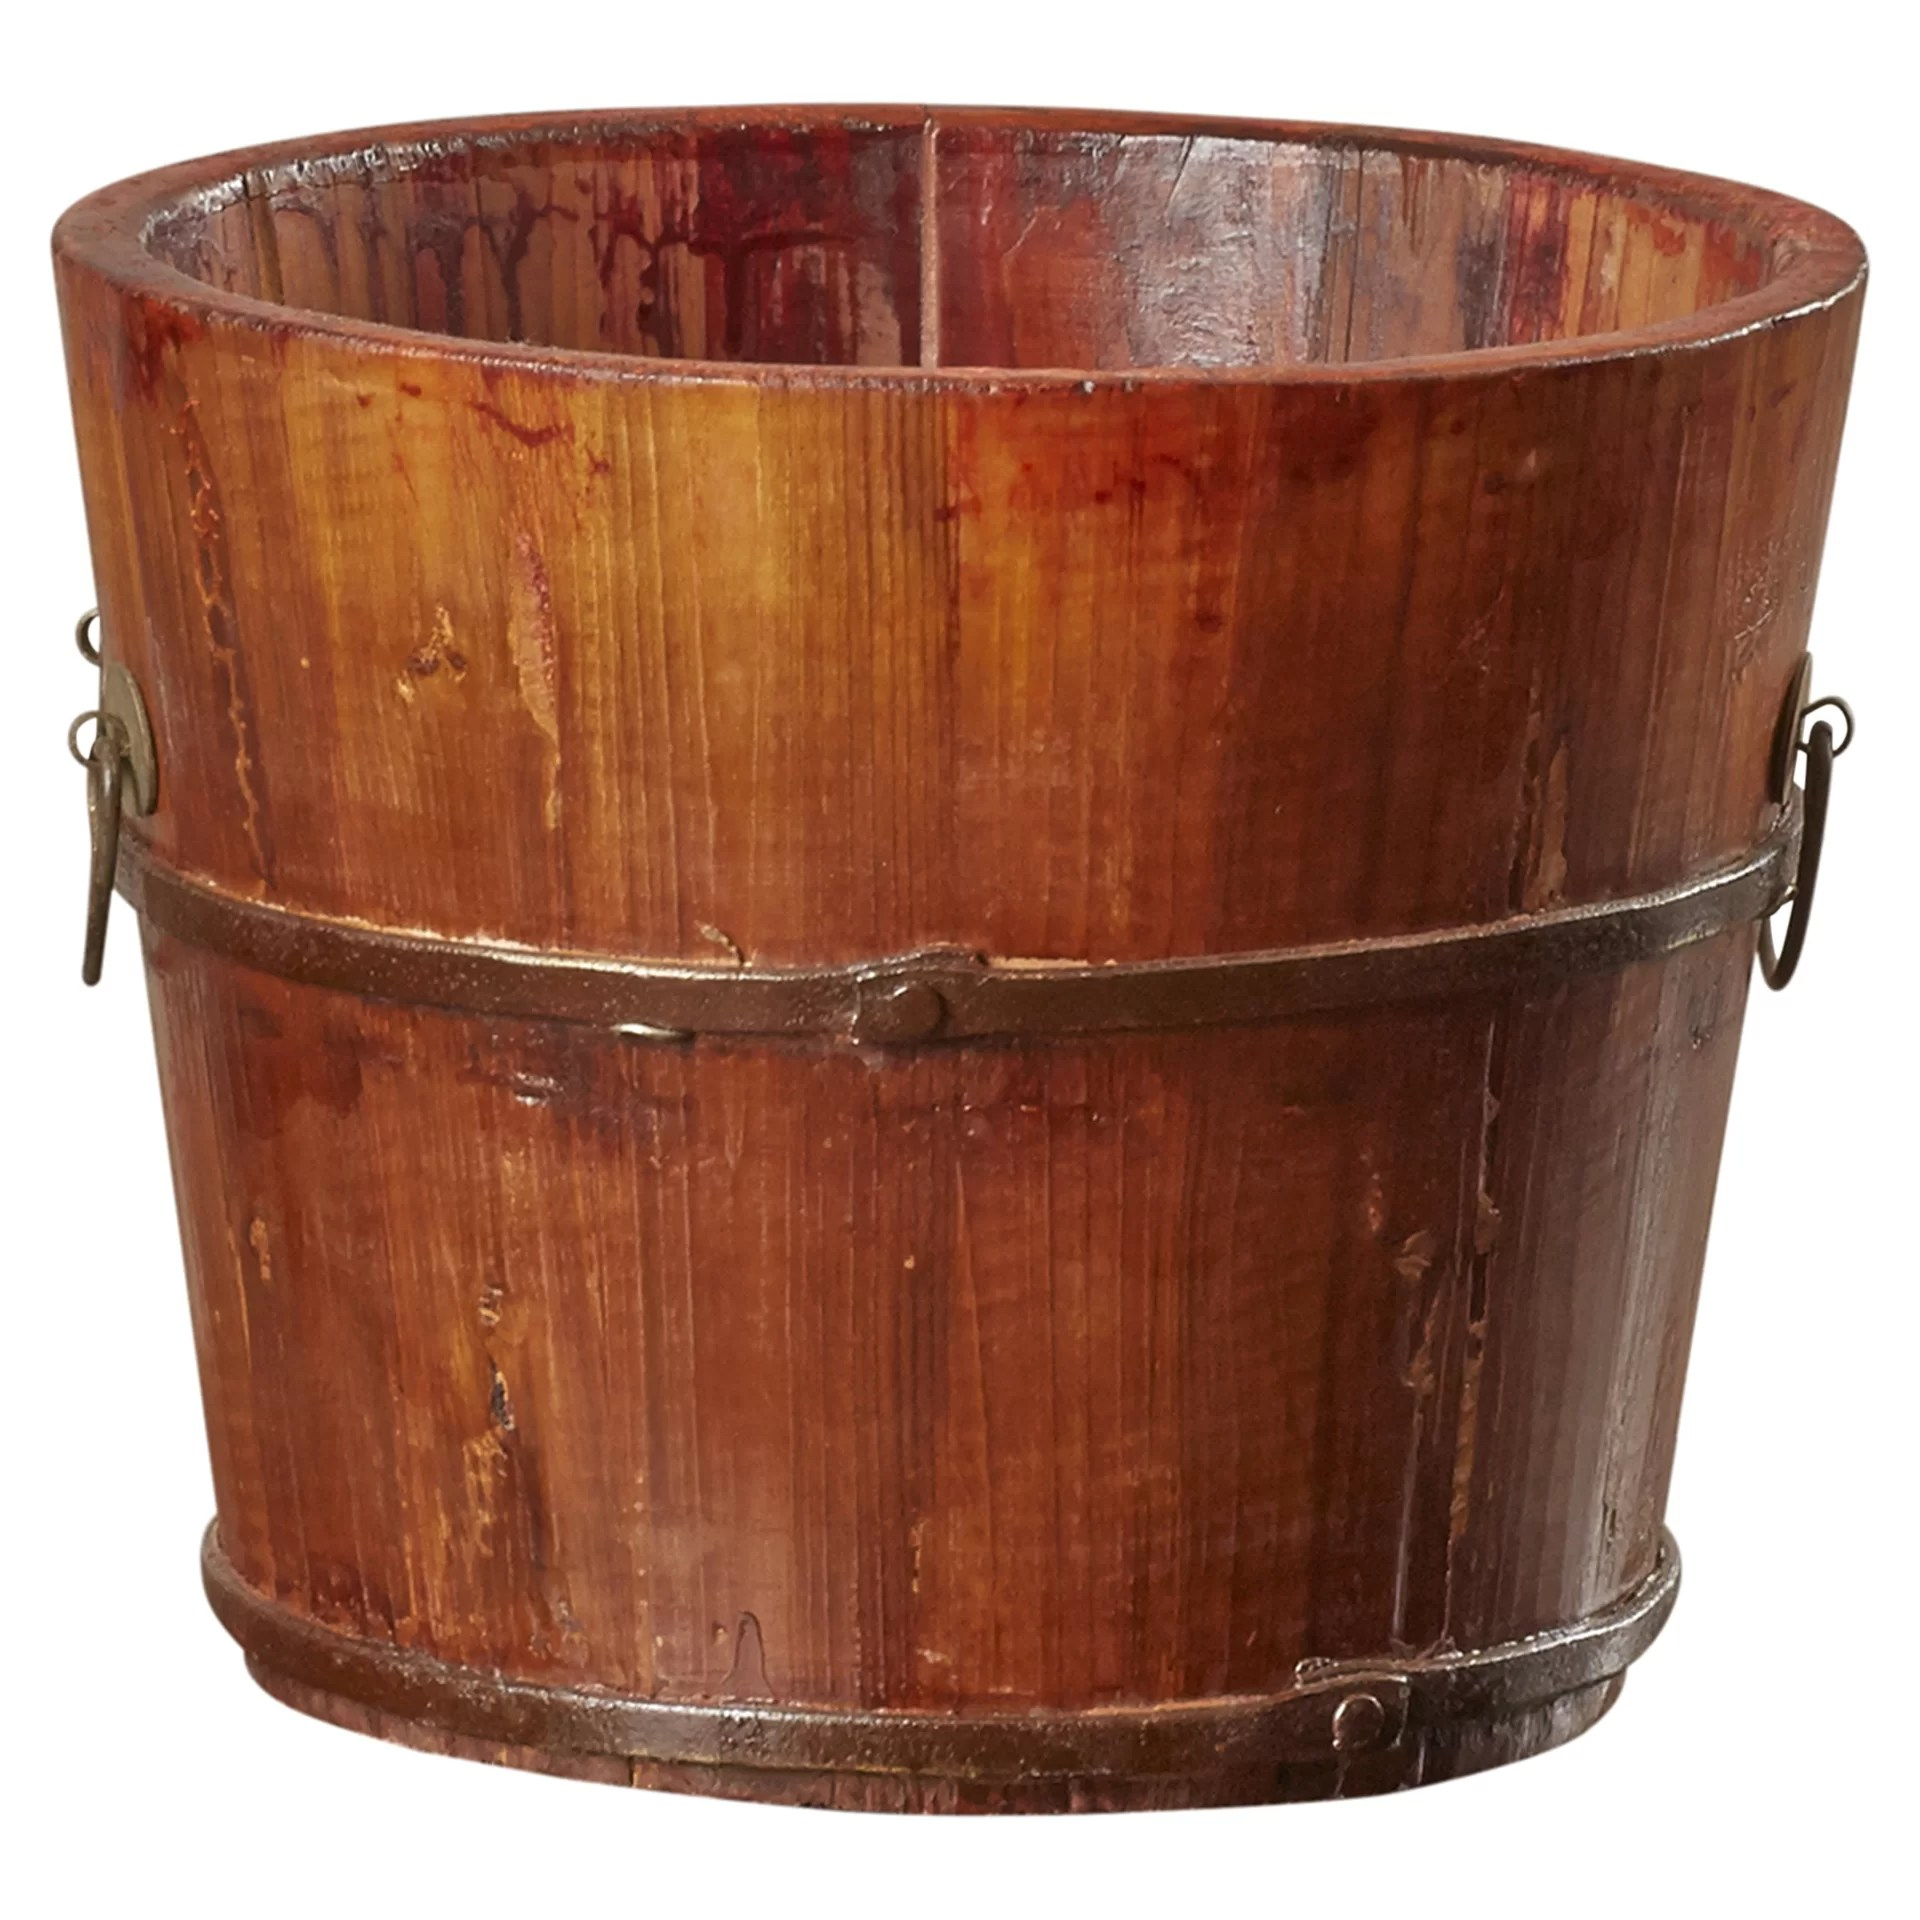 Wooden Sinks August Grove Vintage Decorative Wooden Sink Bucket